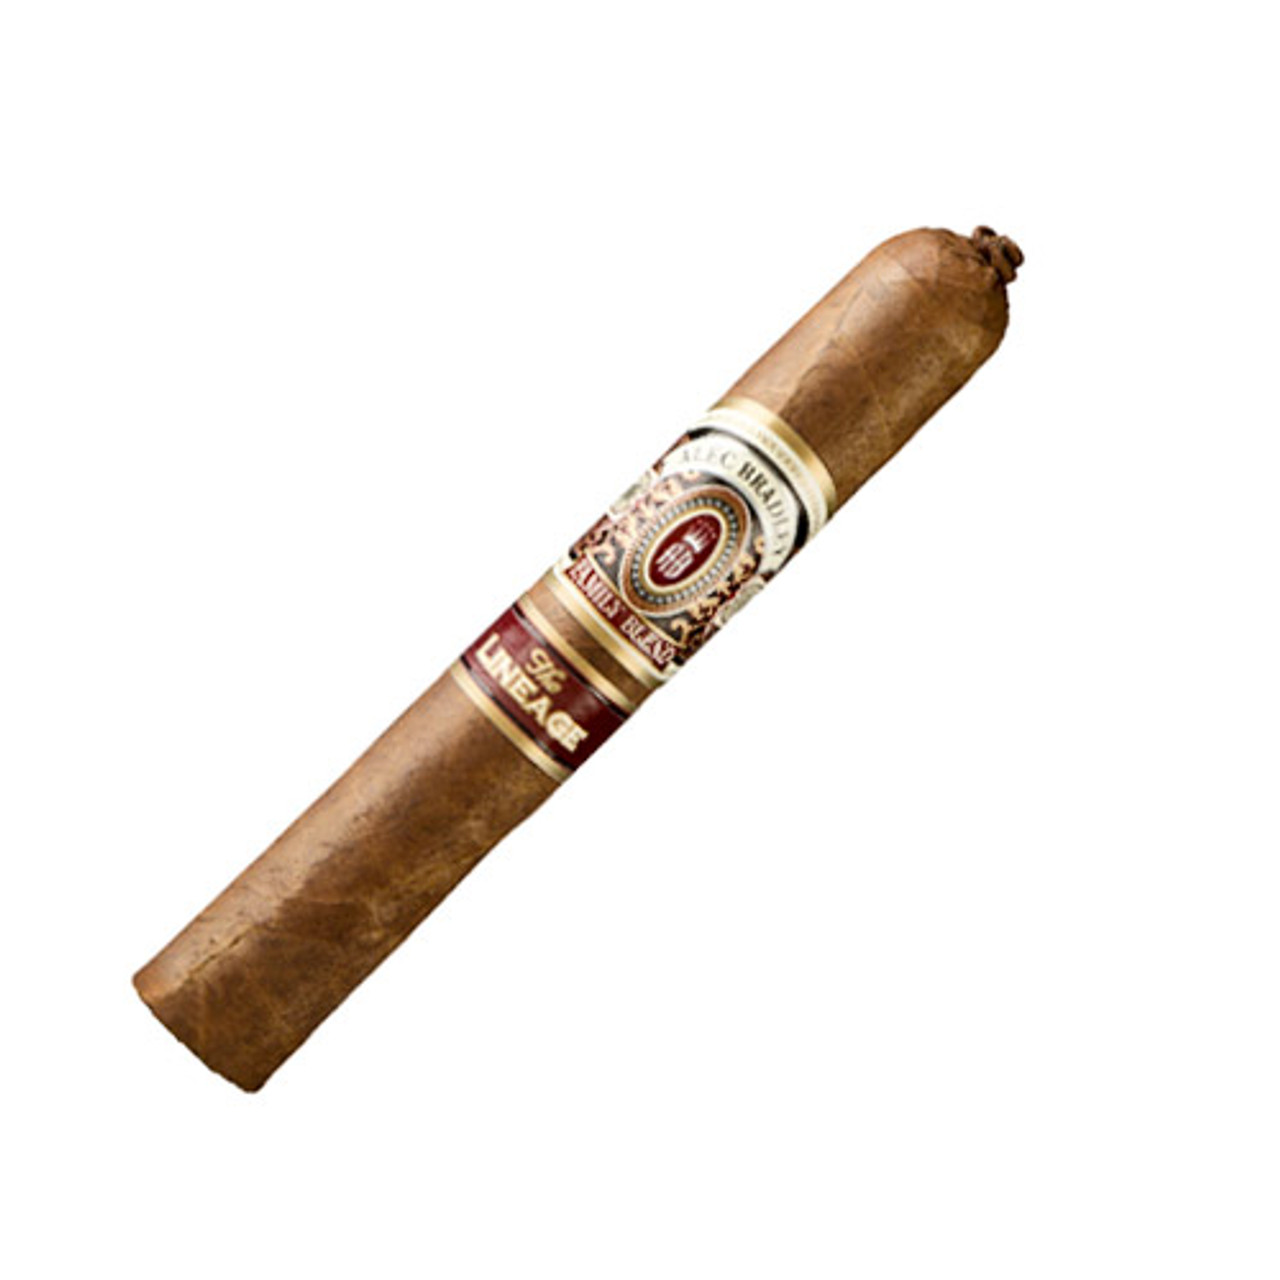 Alec Bradley Family Blend The Lineage Robusto Cigars - 5 1/4 x 52 (Box of 20)